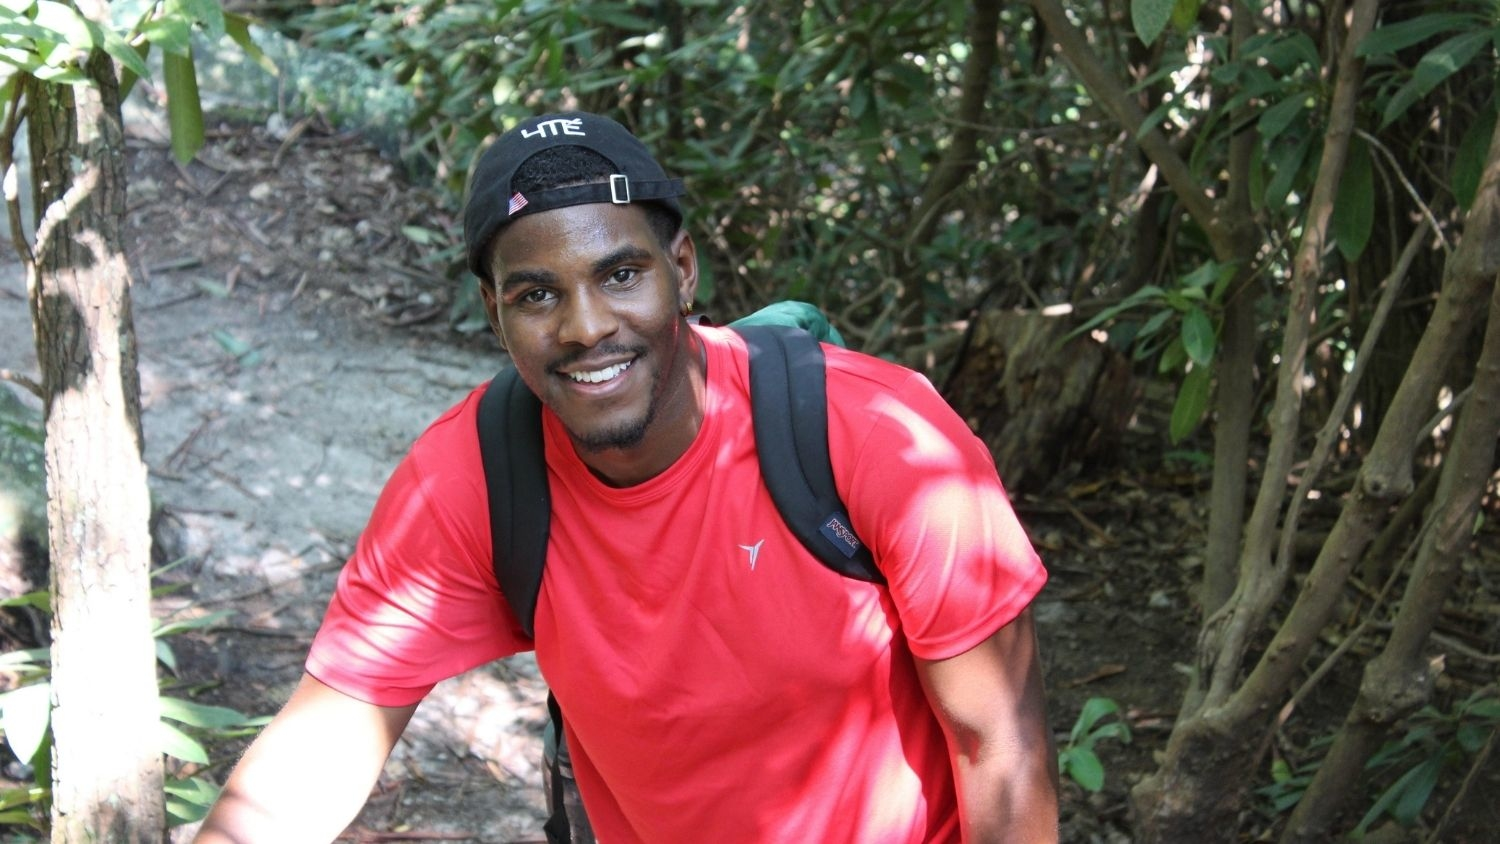 Ryan Barnes - Five Questions with Process Engineer Ryan Barnes - Forest Biomaterials NCState University